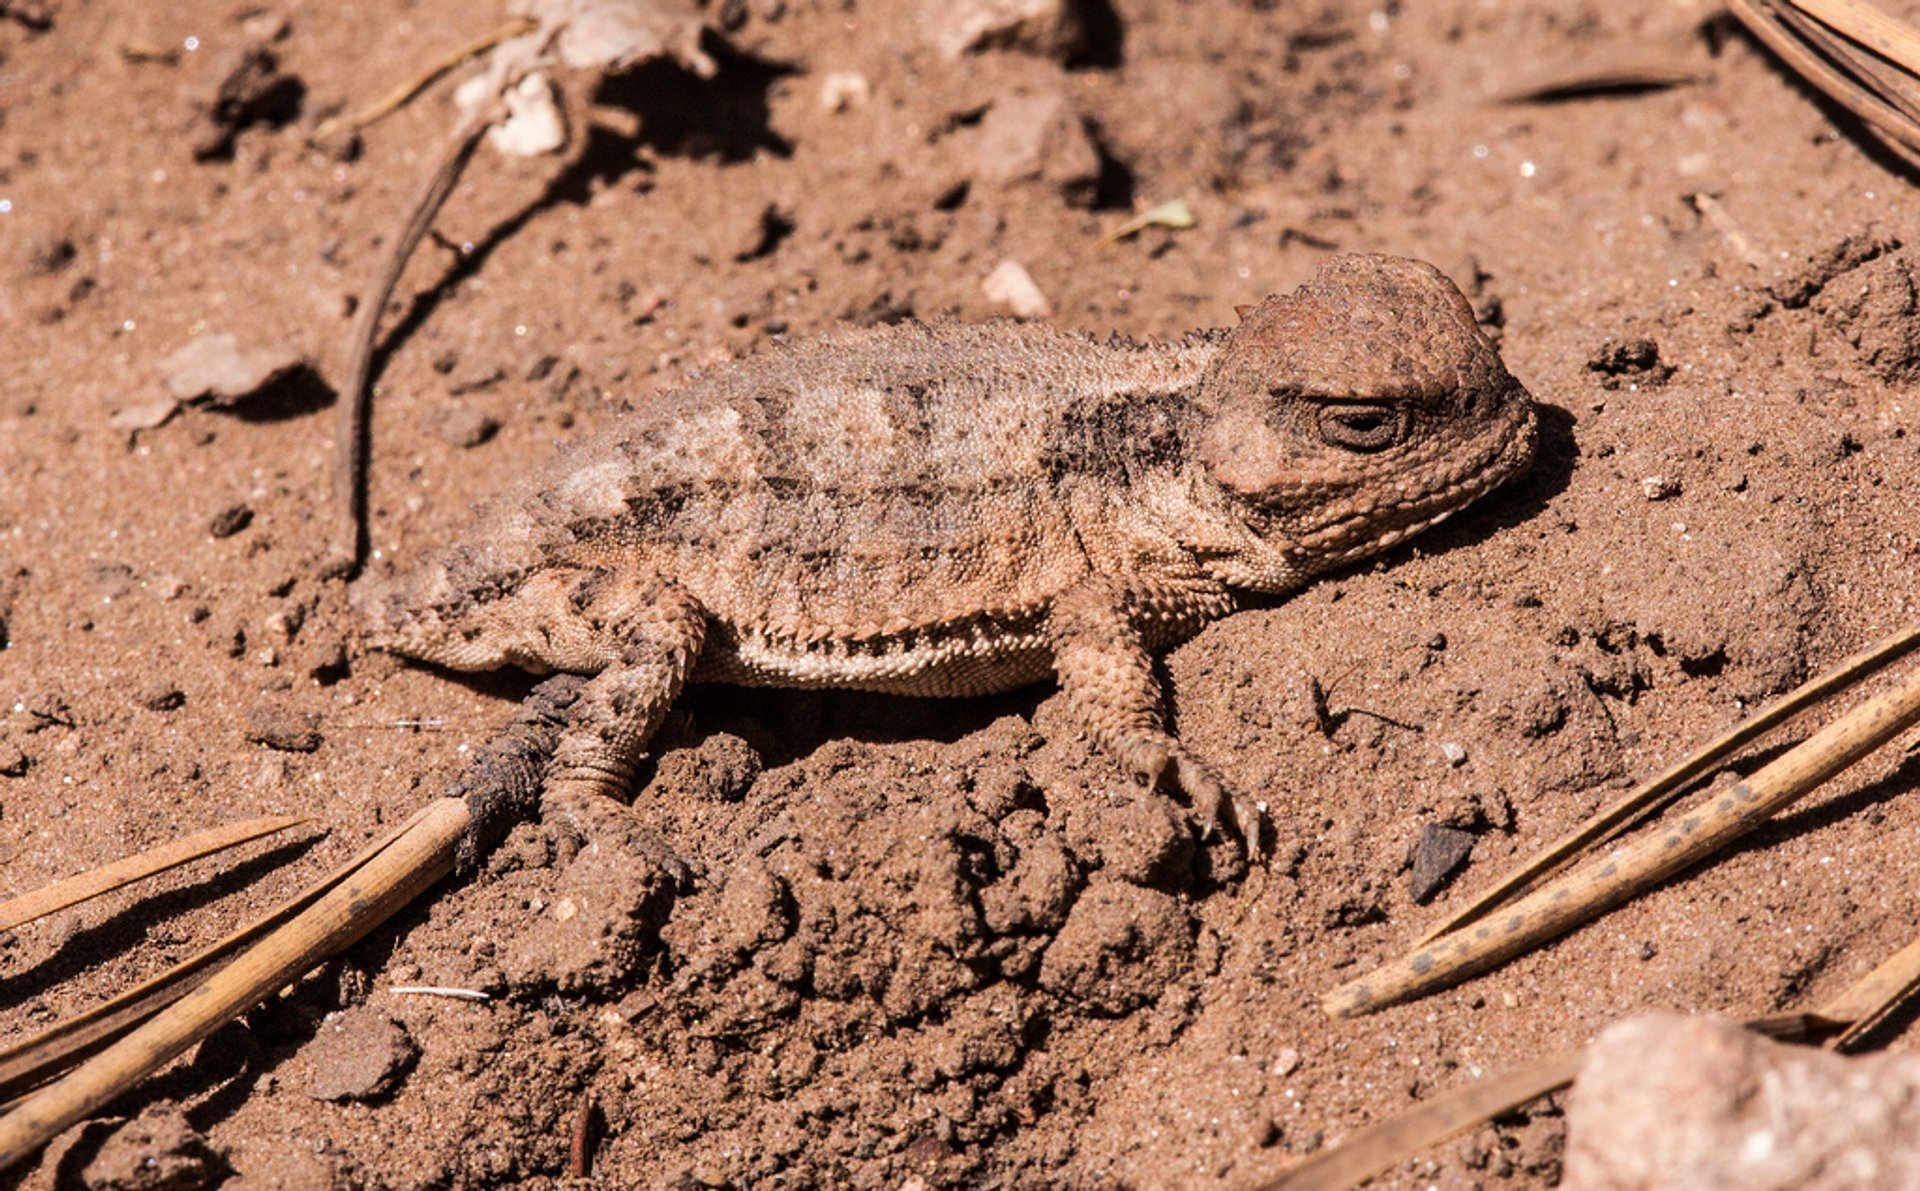 Best time to see Blood-Shooting Lizards in Arizona 2019